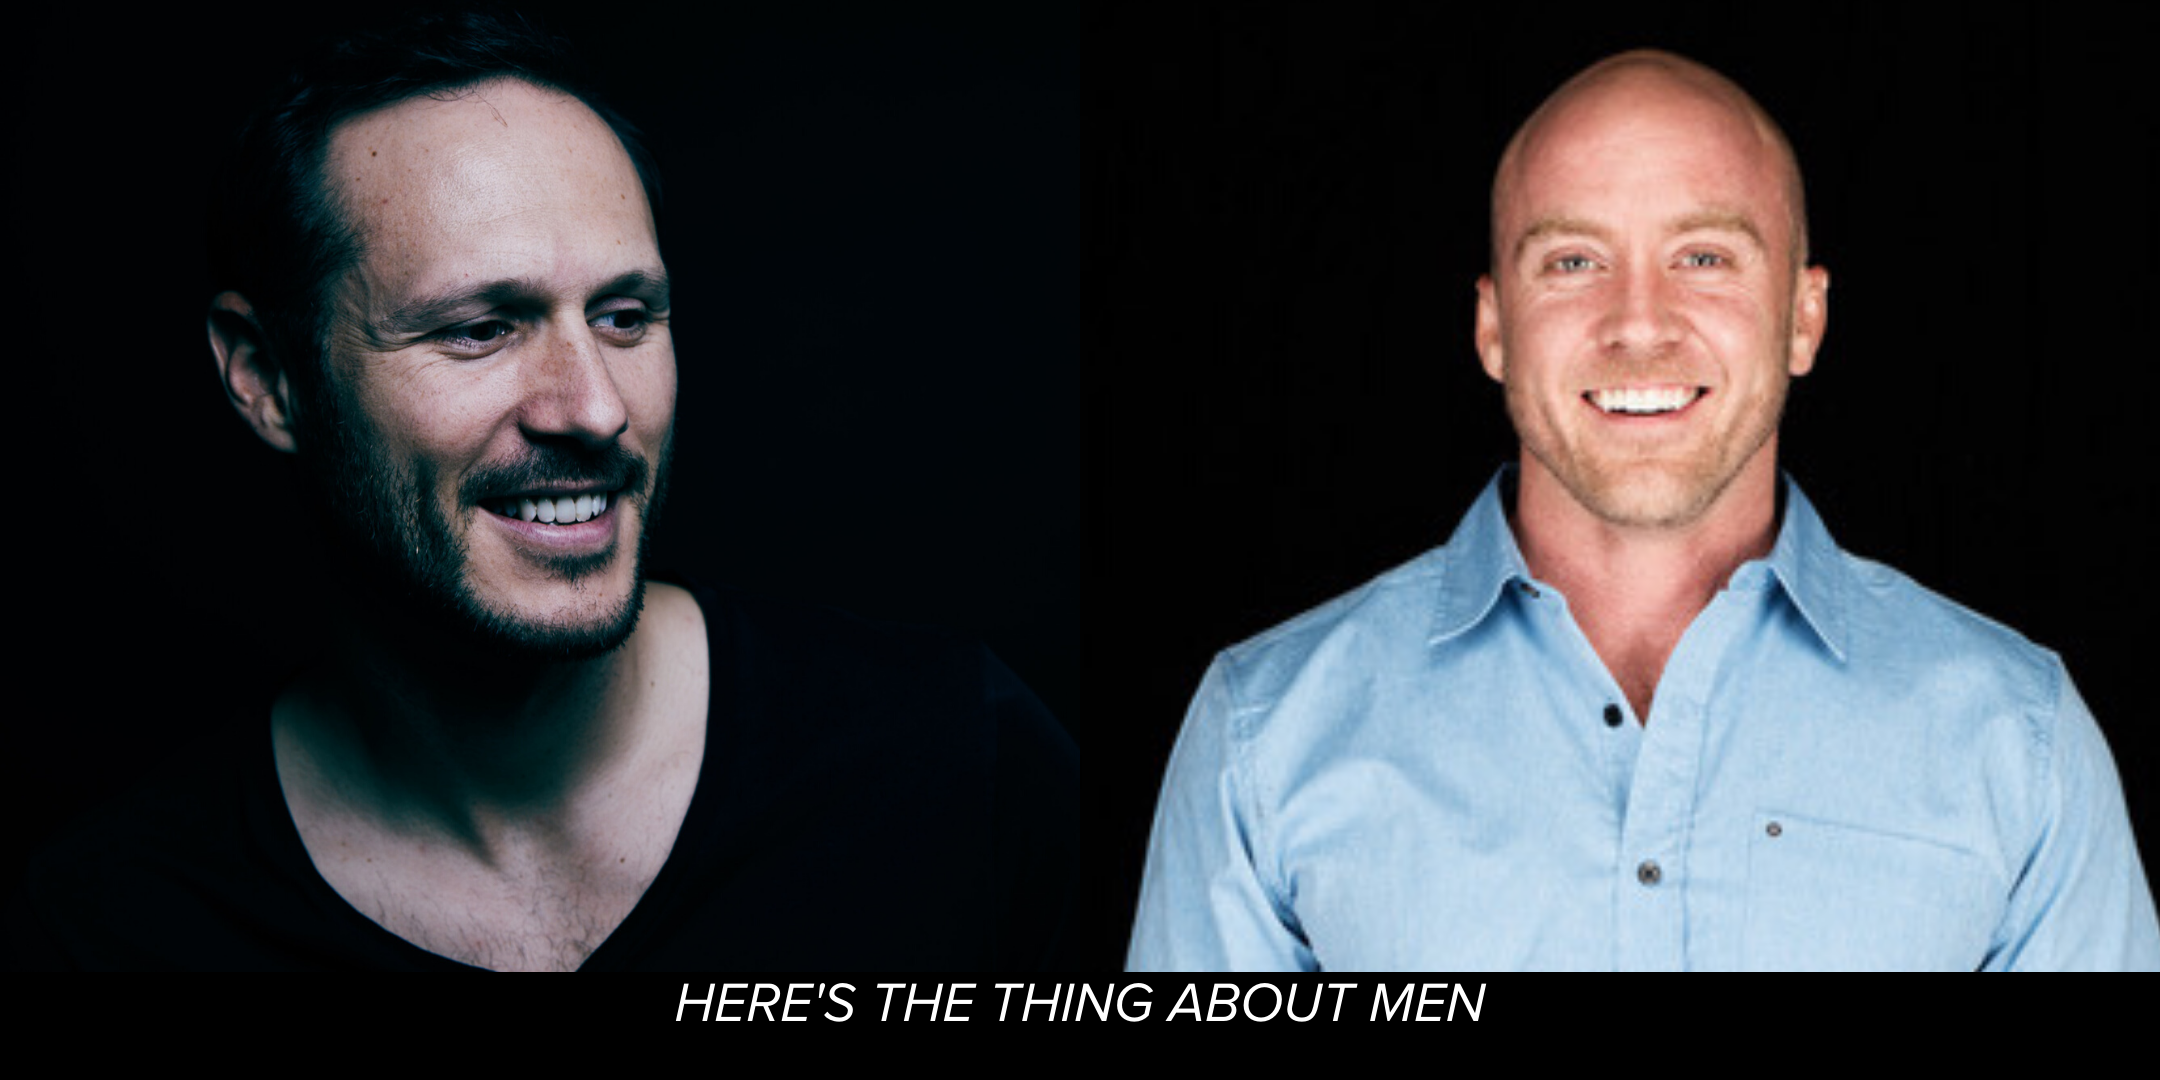 Here's The Thing About Men